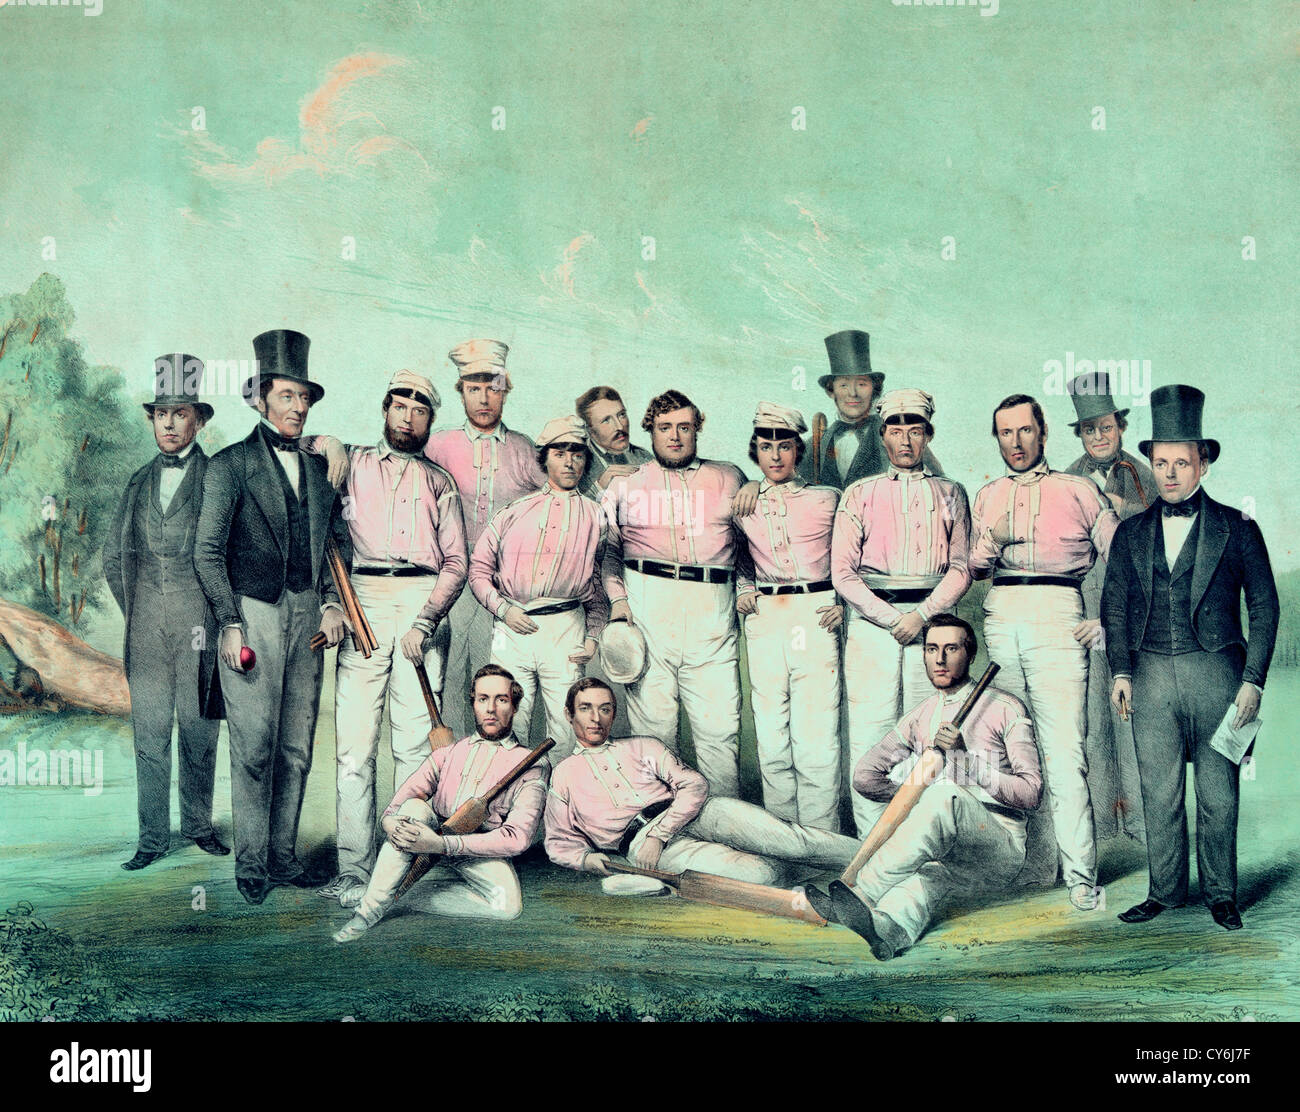 The eleven of New England - Cricket Match at Boston, Massachusetts, September 28th, 1850 - Stock Image